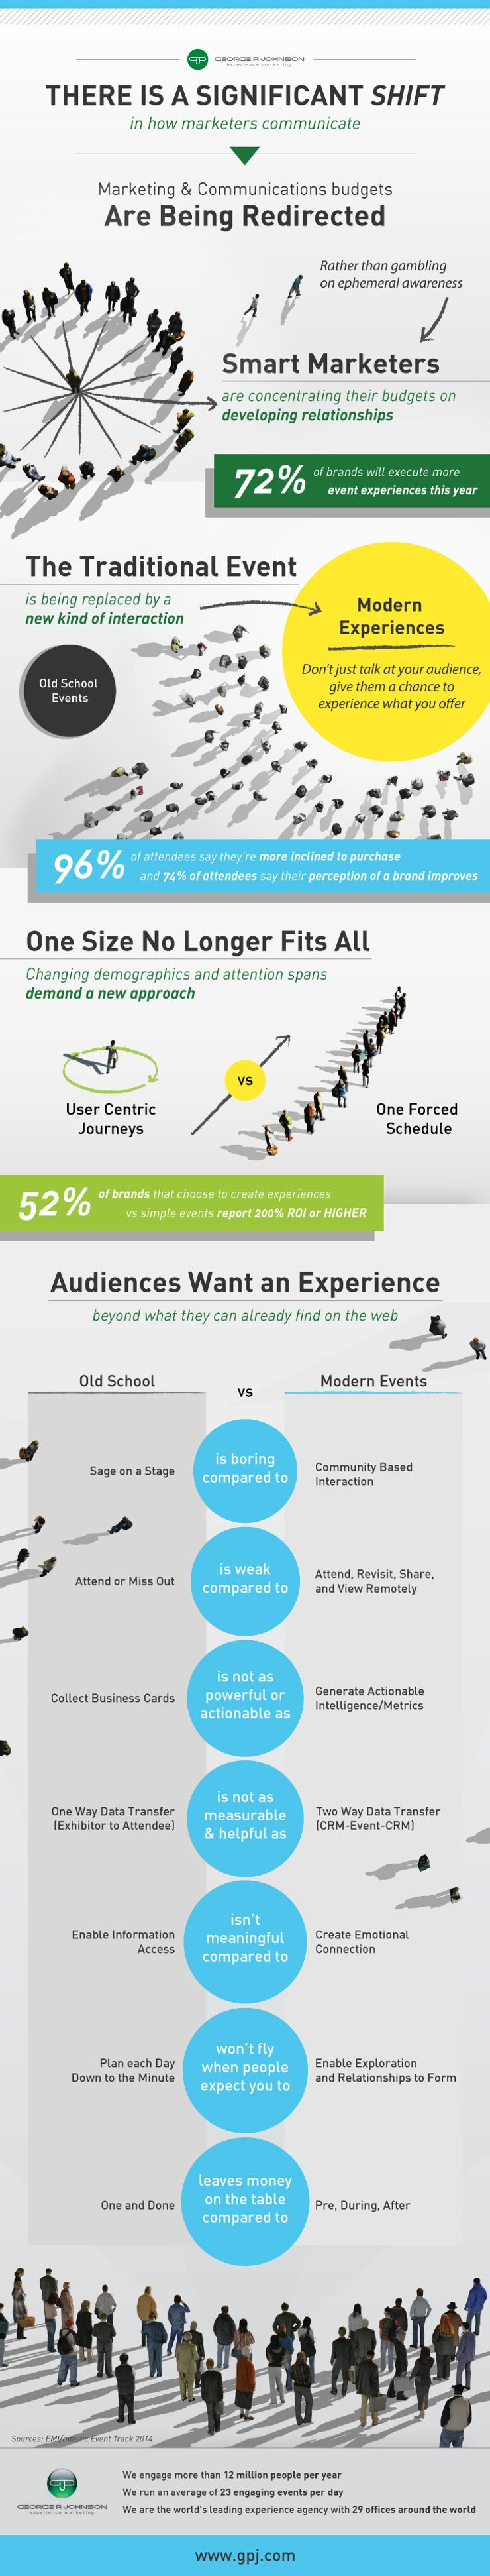 Image 1 for INFOGRAPHIC: A data-driven shift in the marketing budget